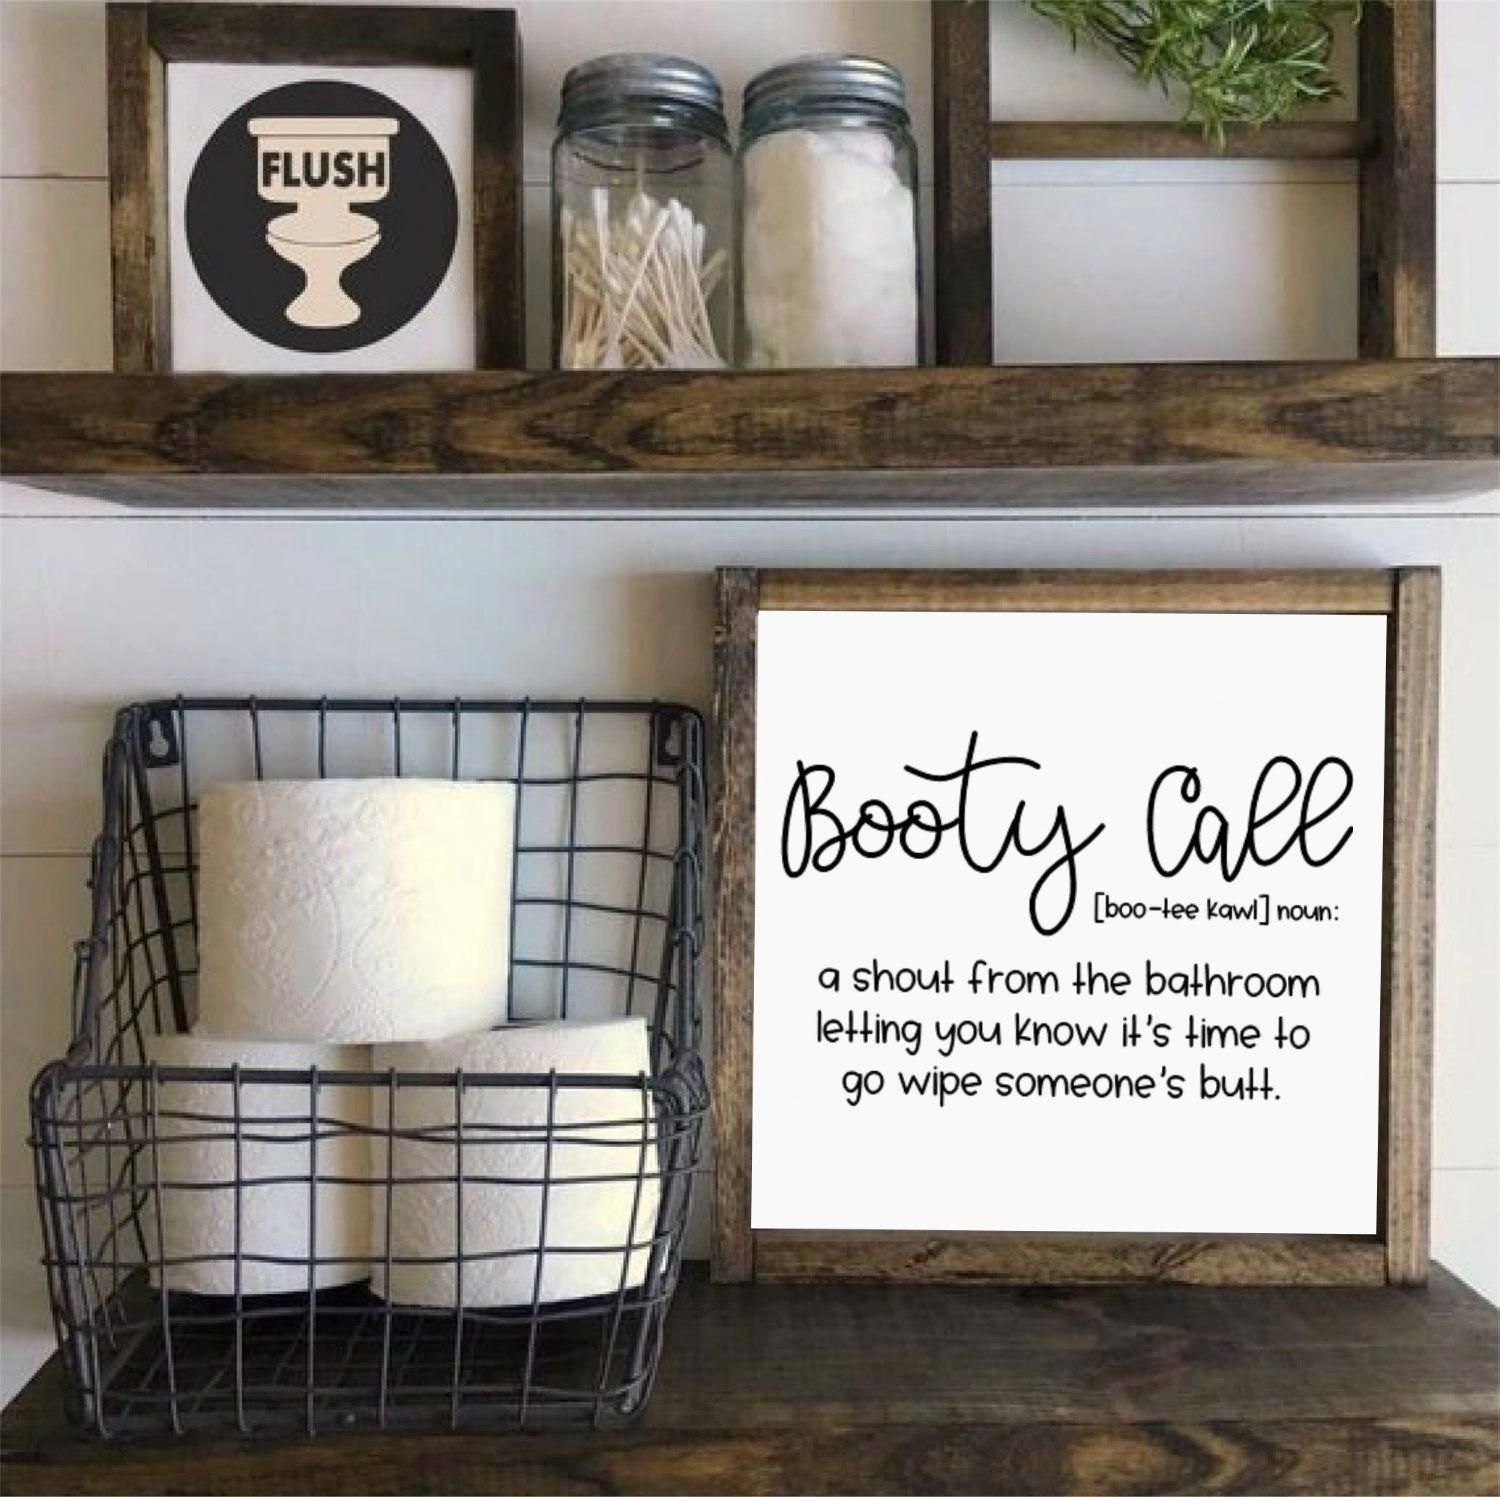 Booty Call| Funny Bathroom Sign|Rustic Decor| Adult Humor|Farmhouse Signs